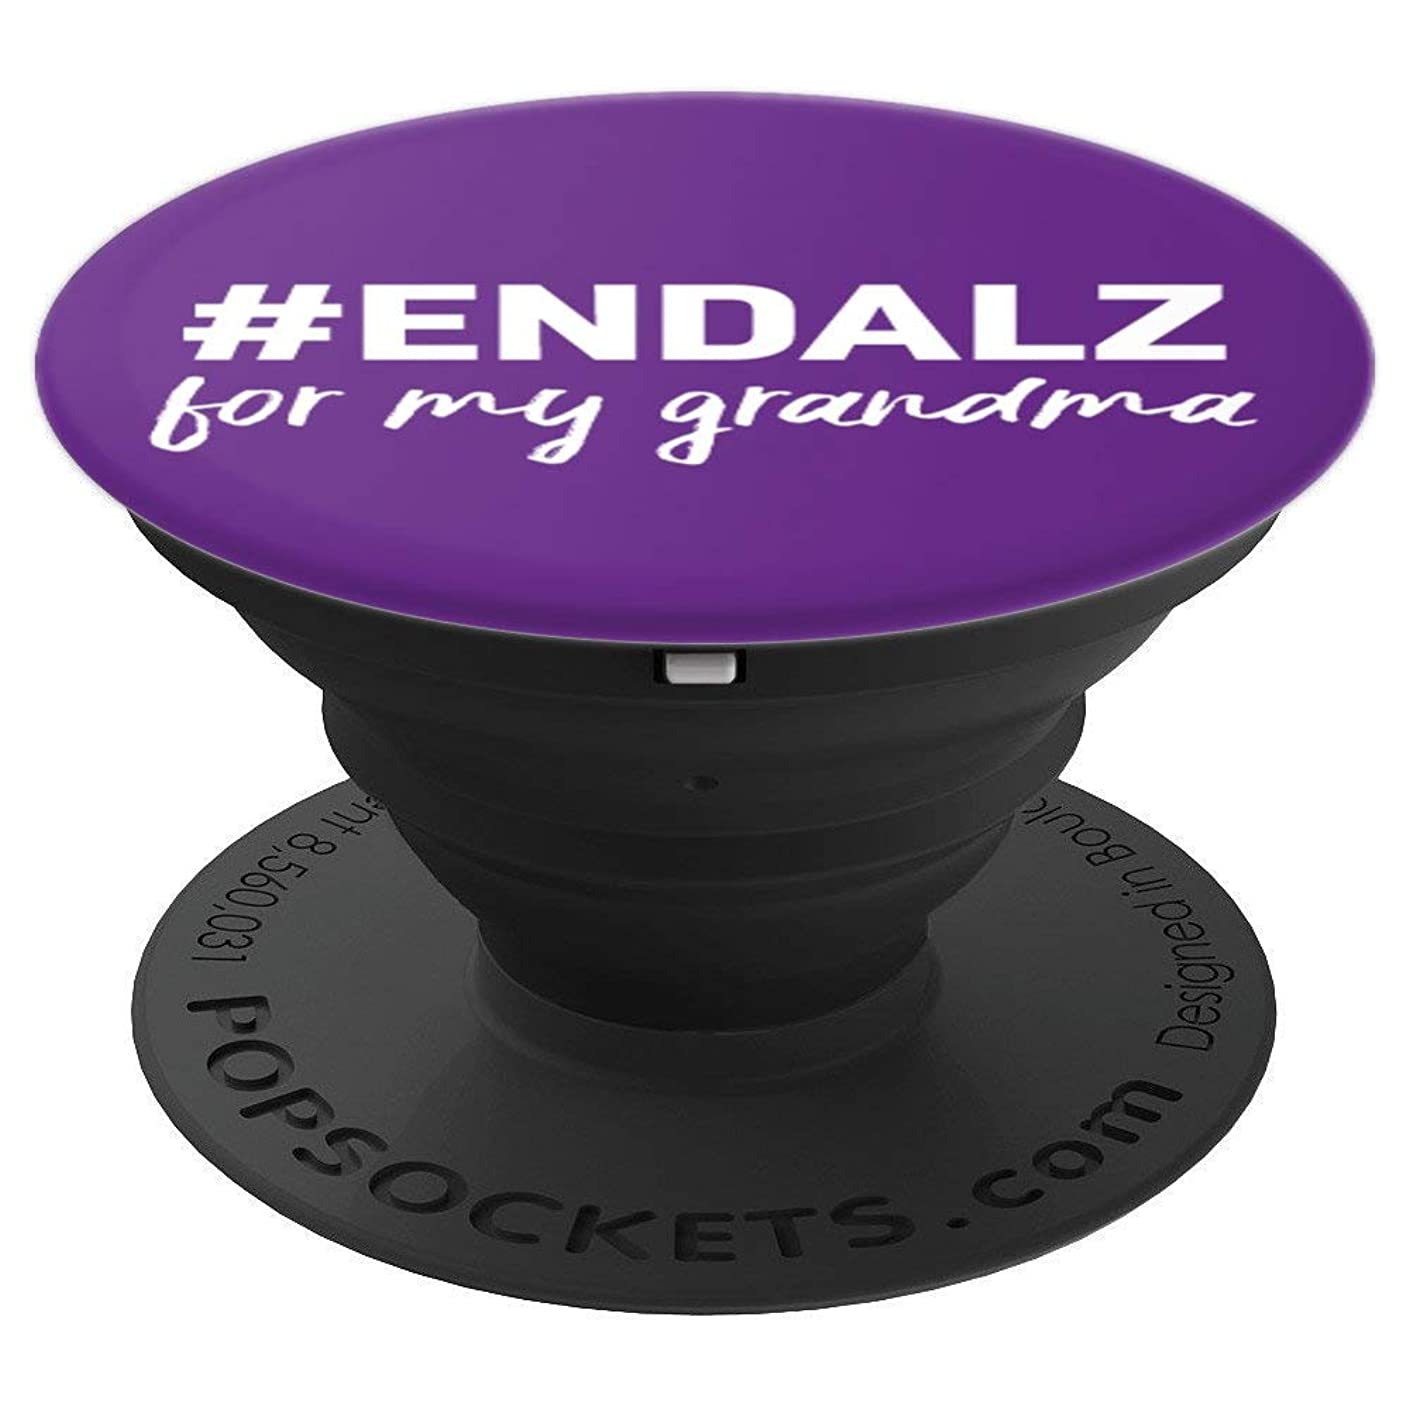 Alzheimer's Awareness Products Purple #ENDALZ End ALZ Gift - PopSockets Grip and Stand for Phones and Tablets